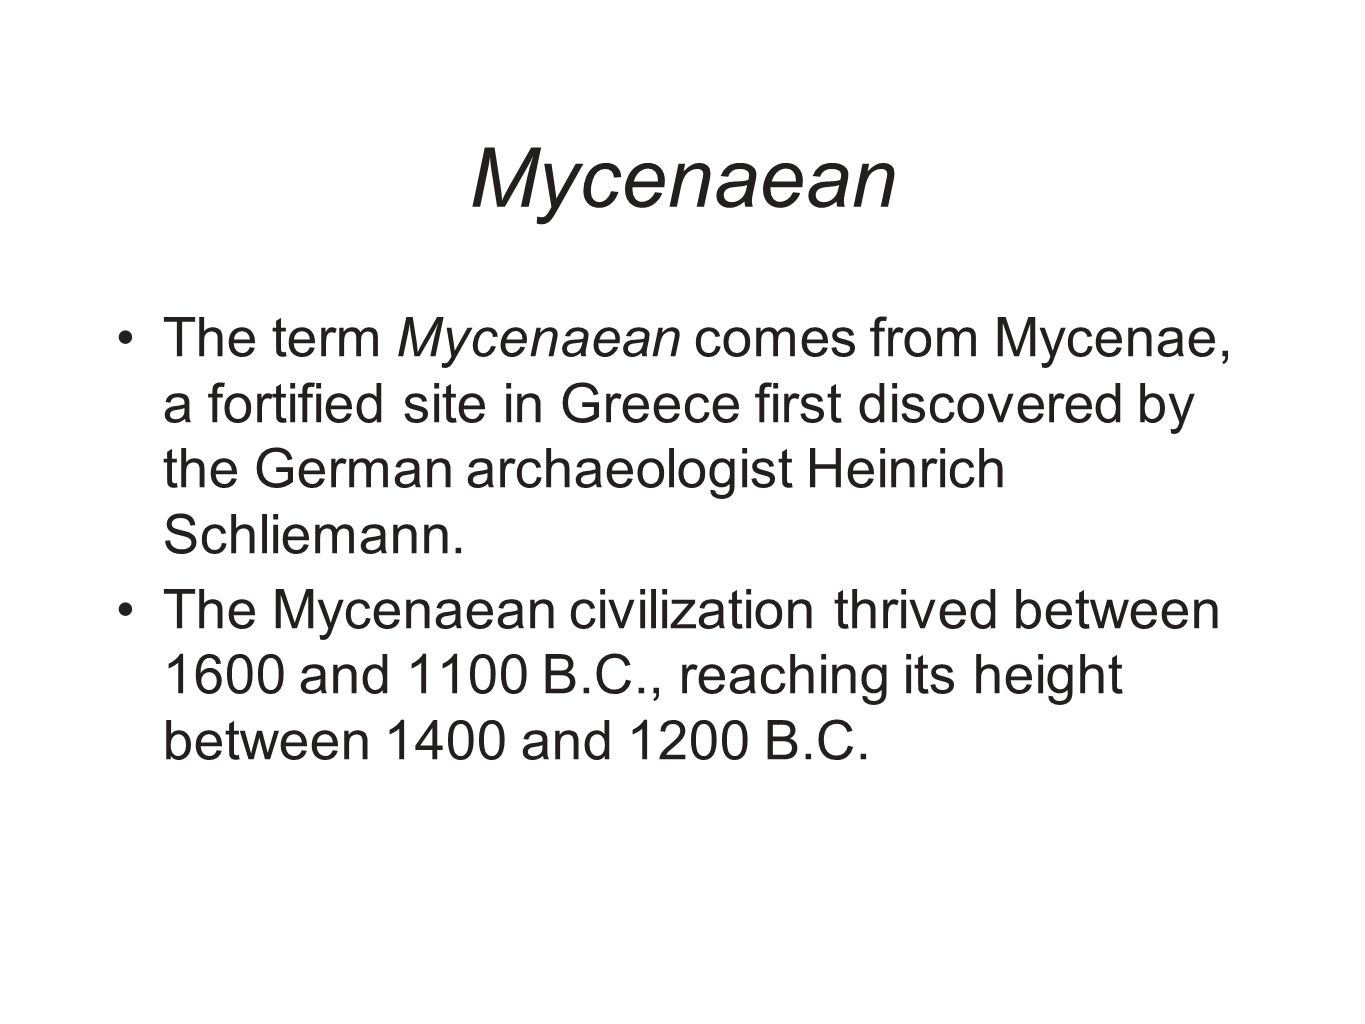 Mycenaean The term Mycenaean comes from Mycenae, a fortified site in Greece first discovered by the German archaeologist Heinrich Schliemann.